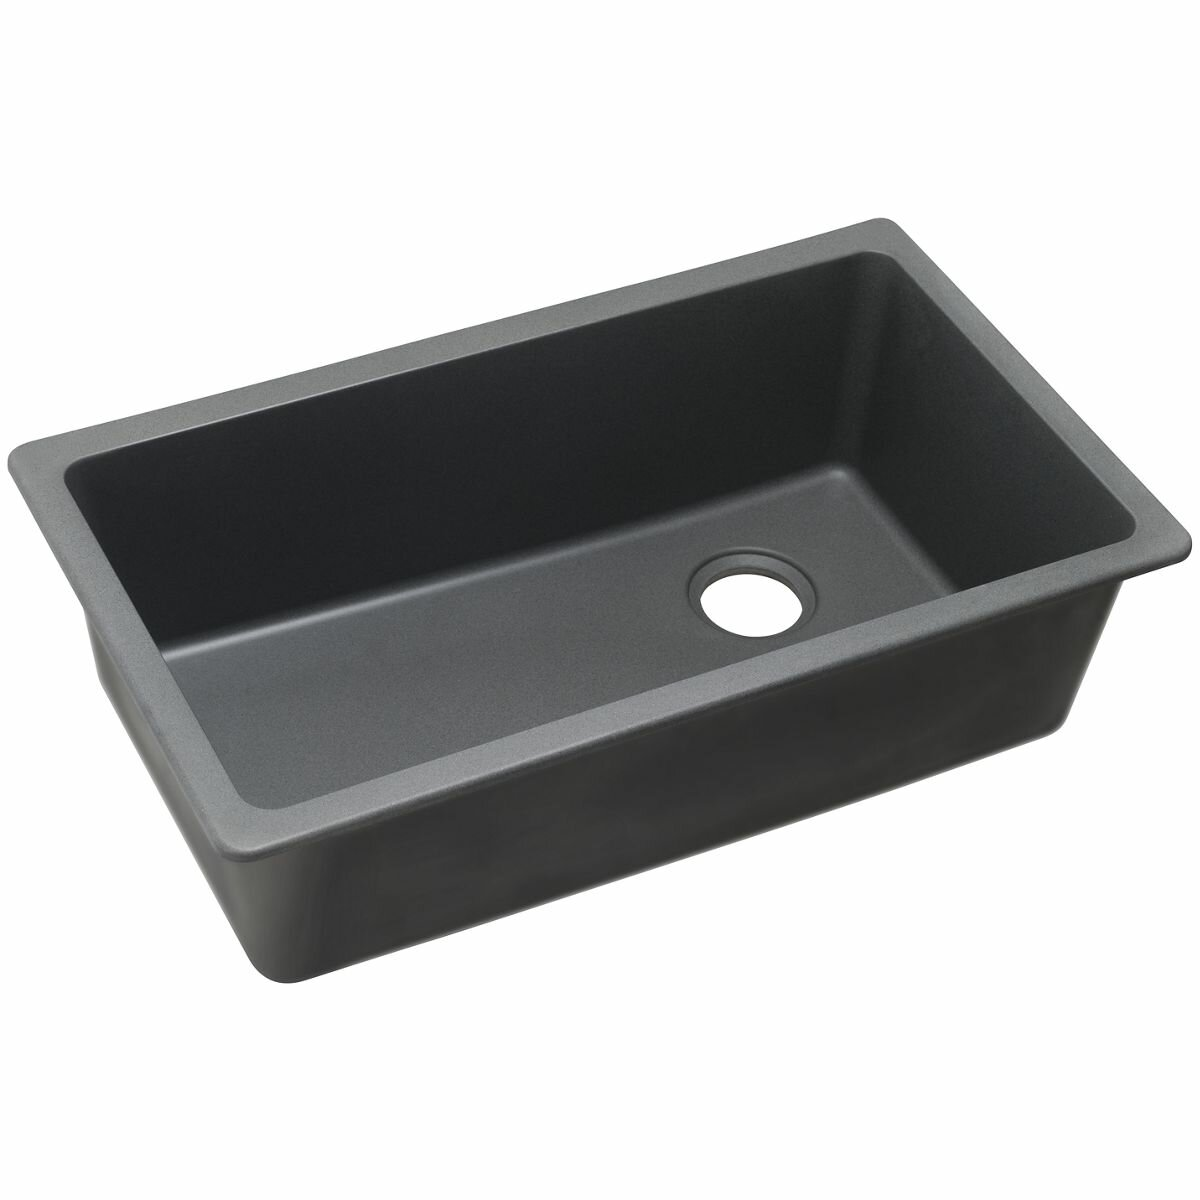 Elkay Quartz Classic Single Bowl Undermount Kitchen Sink